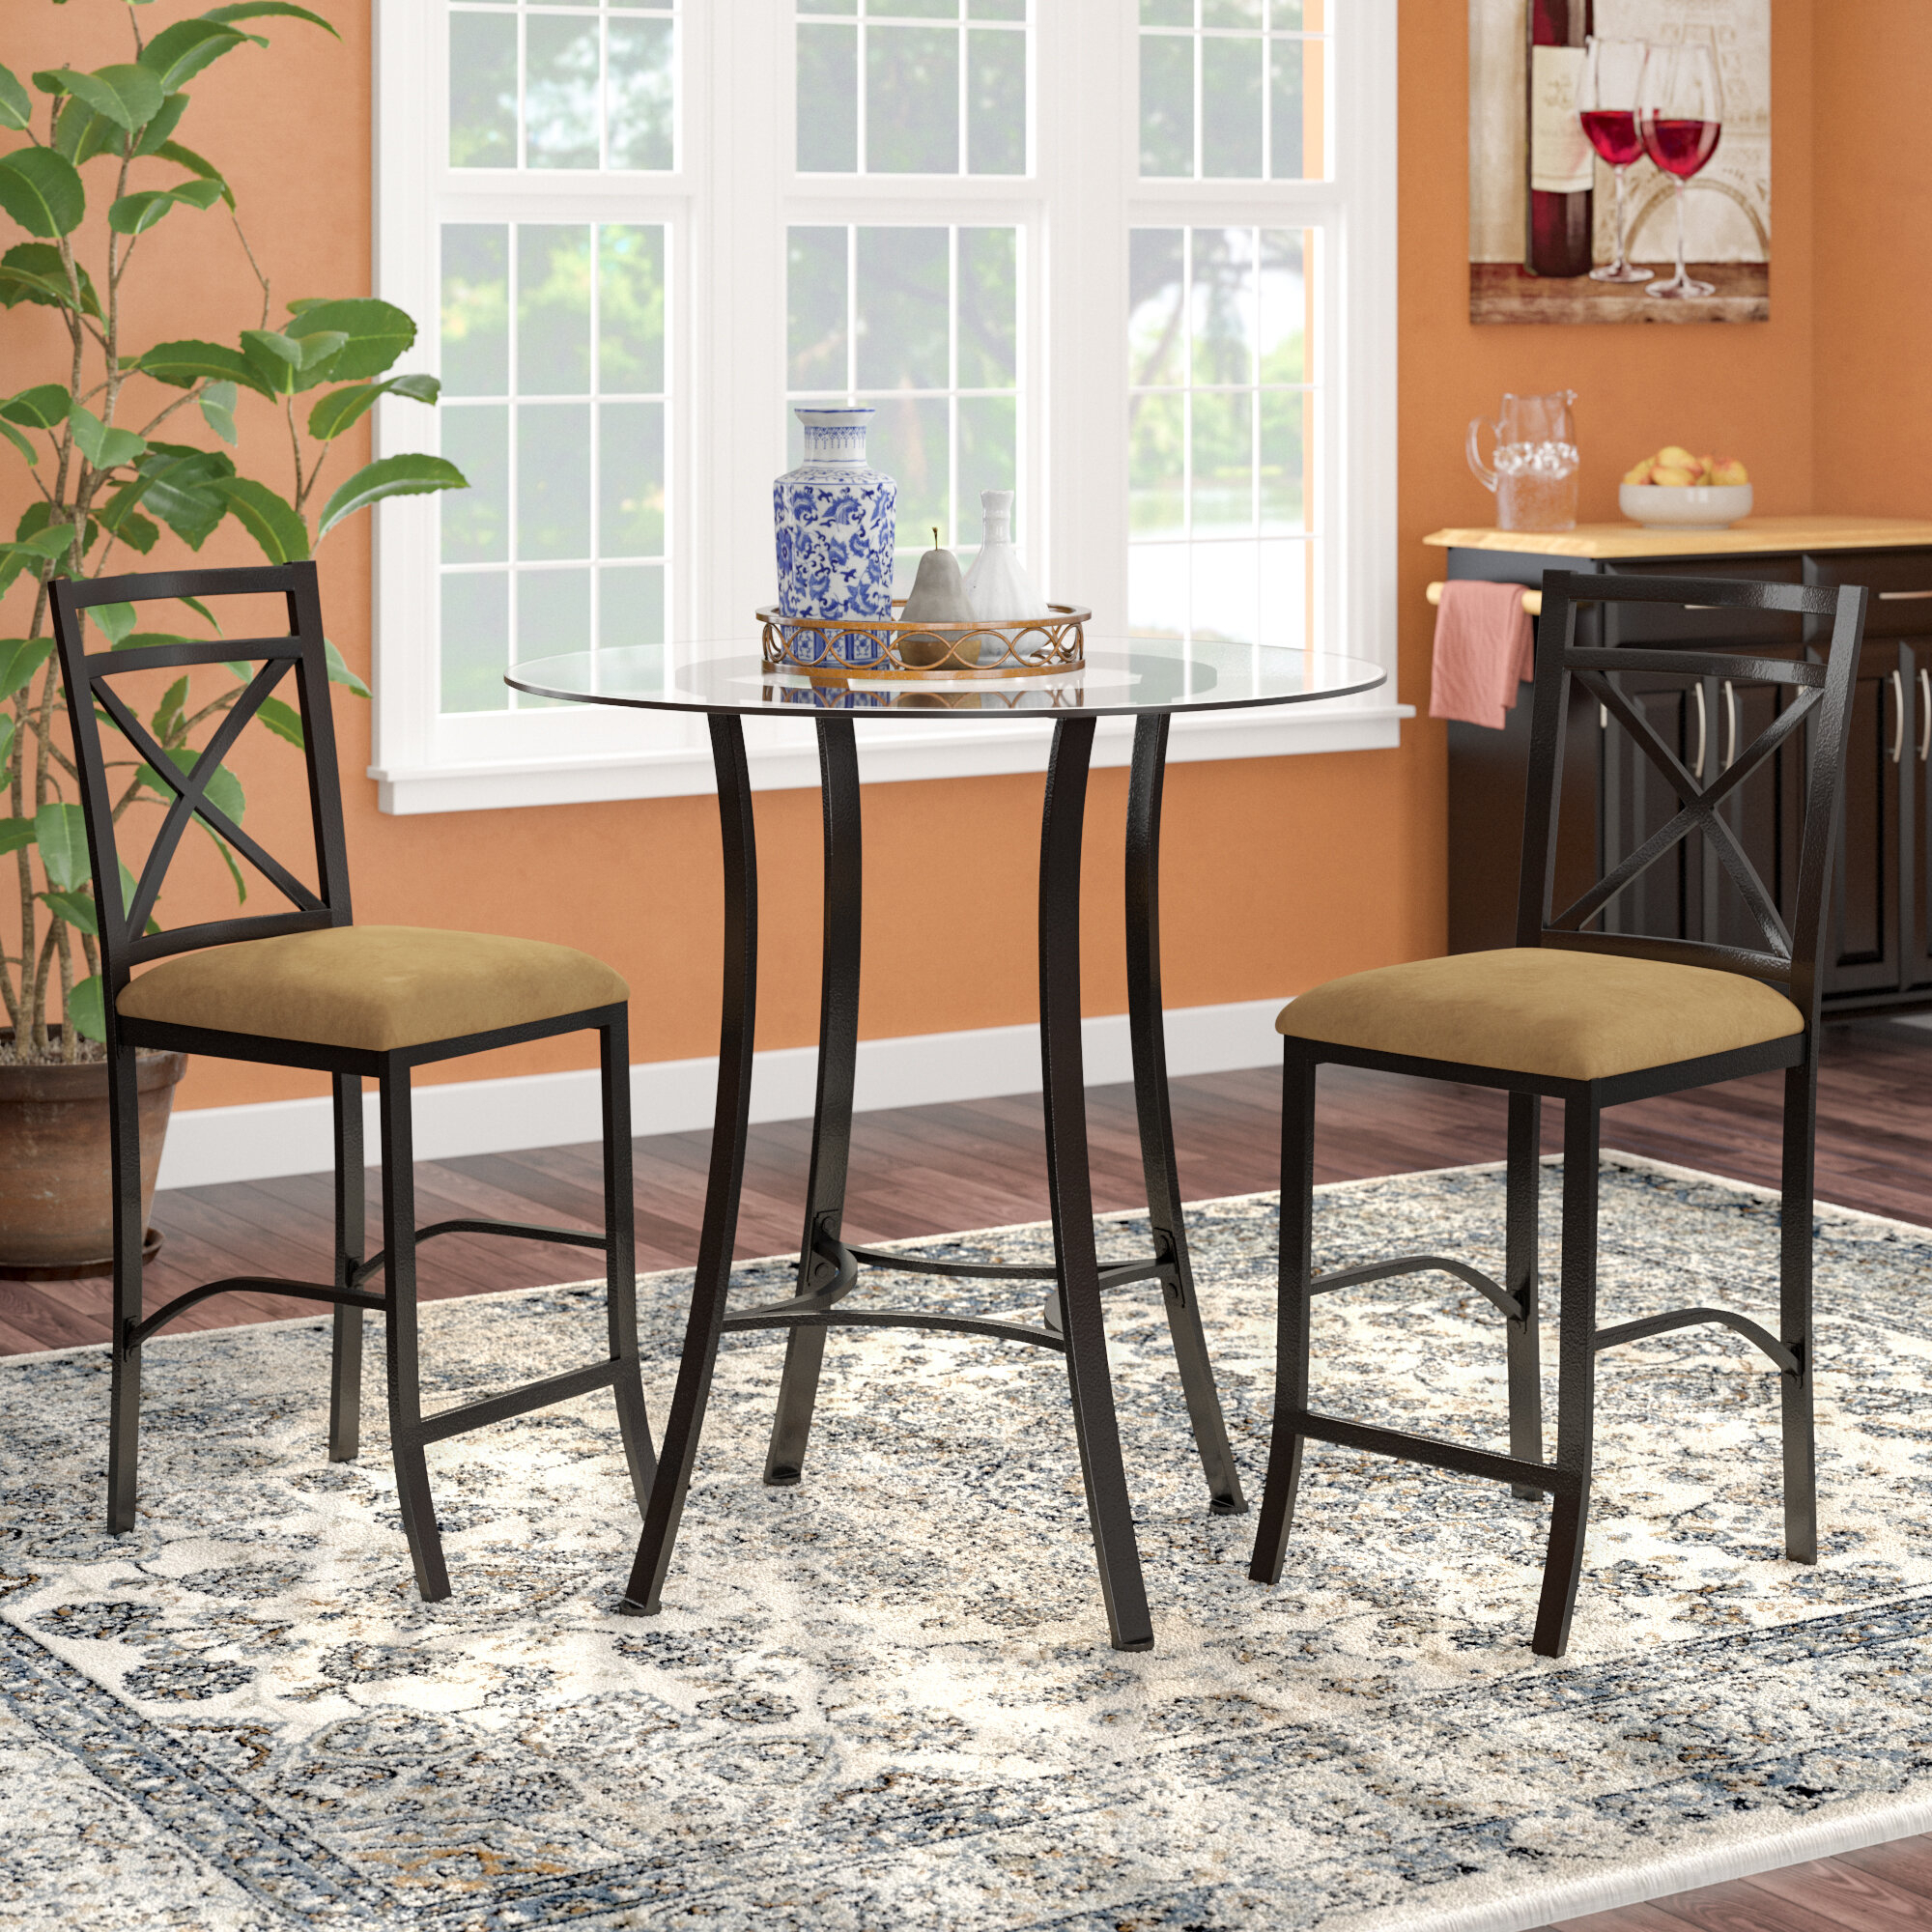 Mitzel 3 Piece Dining Sets Pertaining To Famous Winston Porter Saleh 3 Piece Counter Height Dining Set (View 10 of 20)